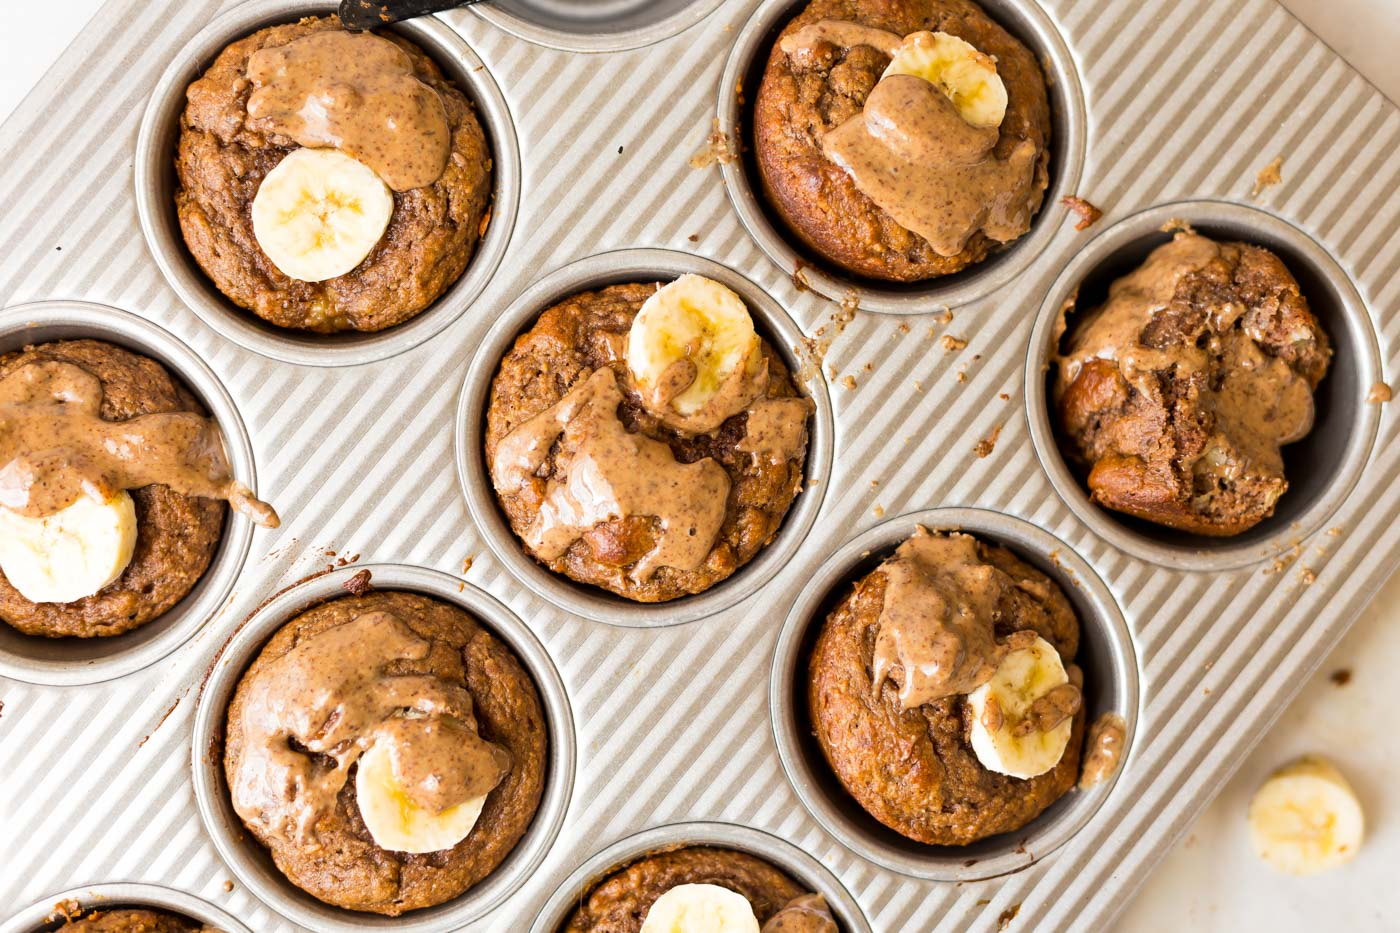 Protein Powder Muffins topped with banana slices and almond butter in muffin tin pan